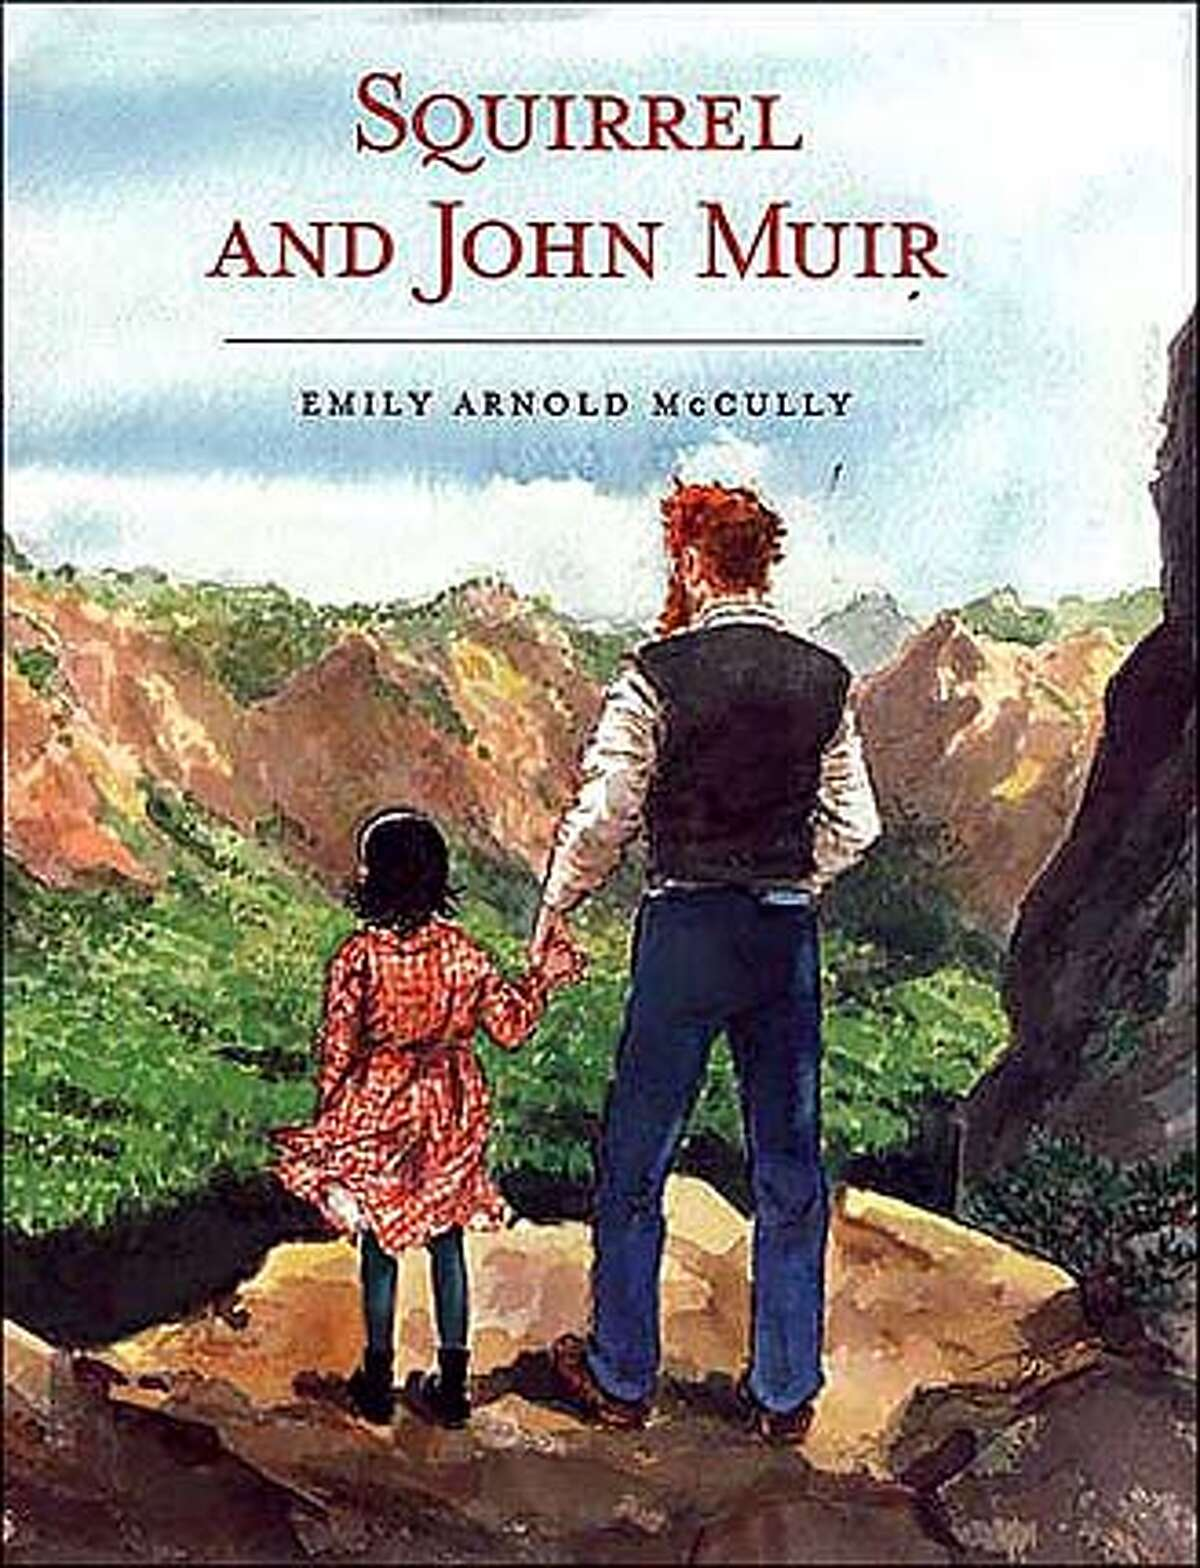 KIDSWHITMAN31.JPG Book cover of SQUIRREL AND JOHN MUIR by Emily Arnold McCully HO MANDATORY CREDIT FOR PHOTOG AND SF CHRONICLE/ -MAGS OUT BookReview#BookReview#Chronicle#10-31-2004#ALL#Advance#M6#0422435052 BookReview#BookReview#Chronicle#10-31-2004#ALL#Advance#M6#0422435052